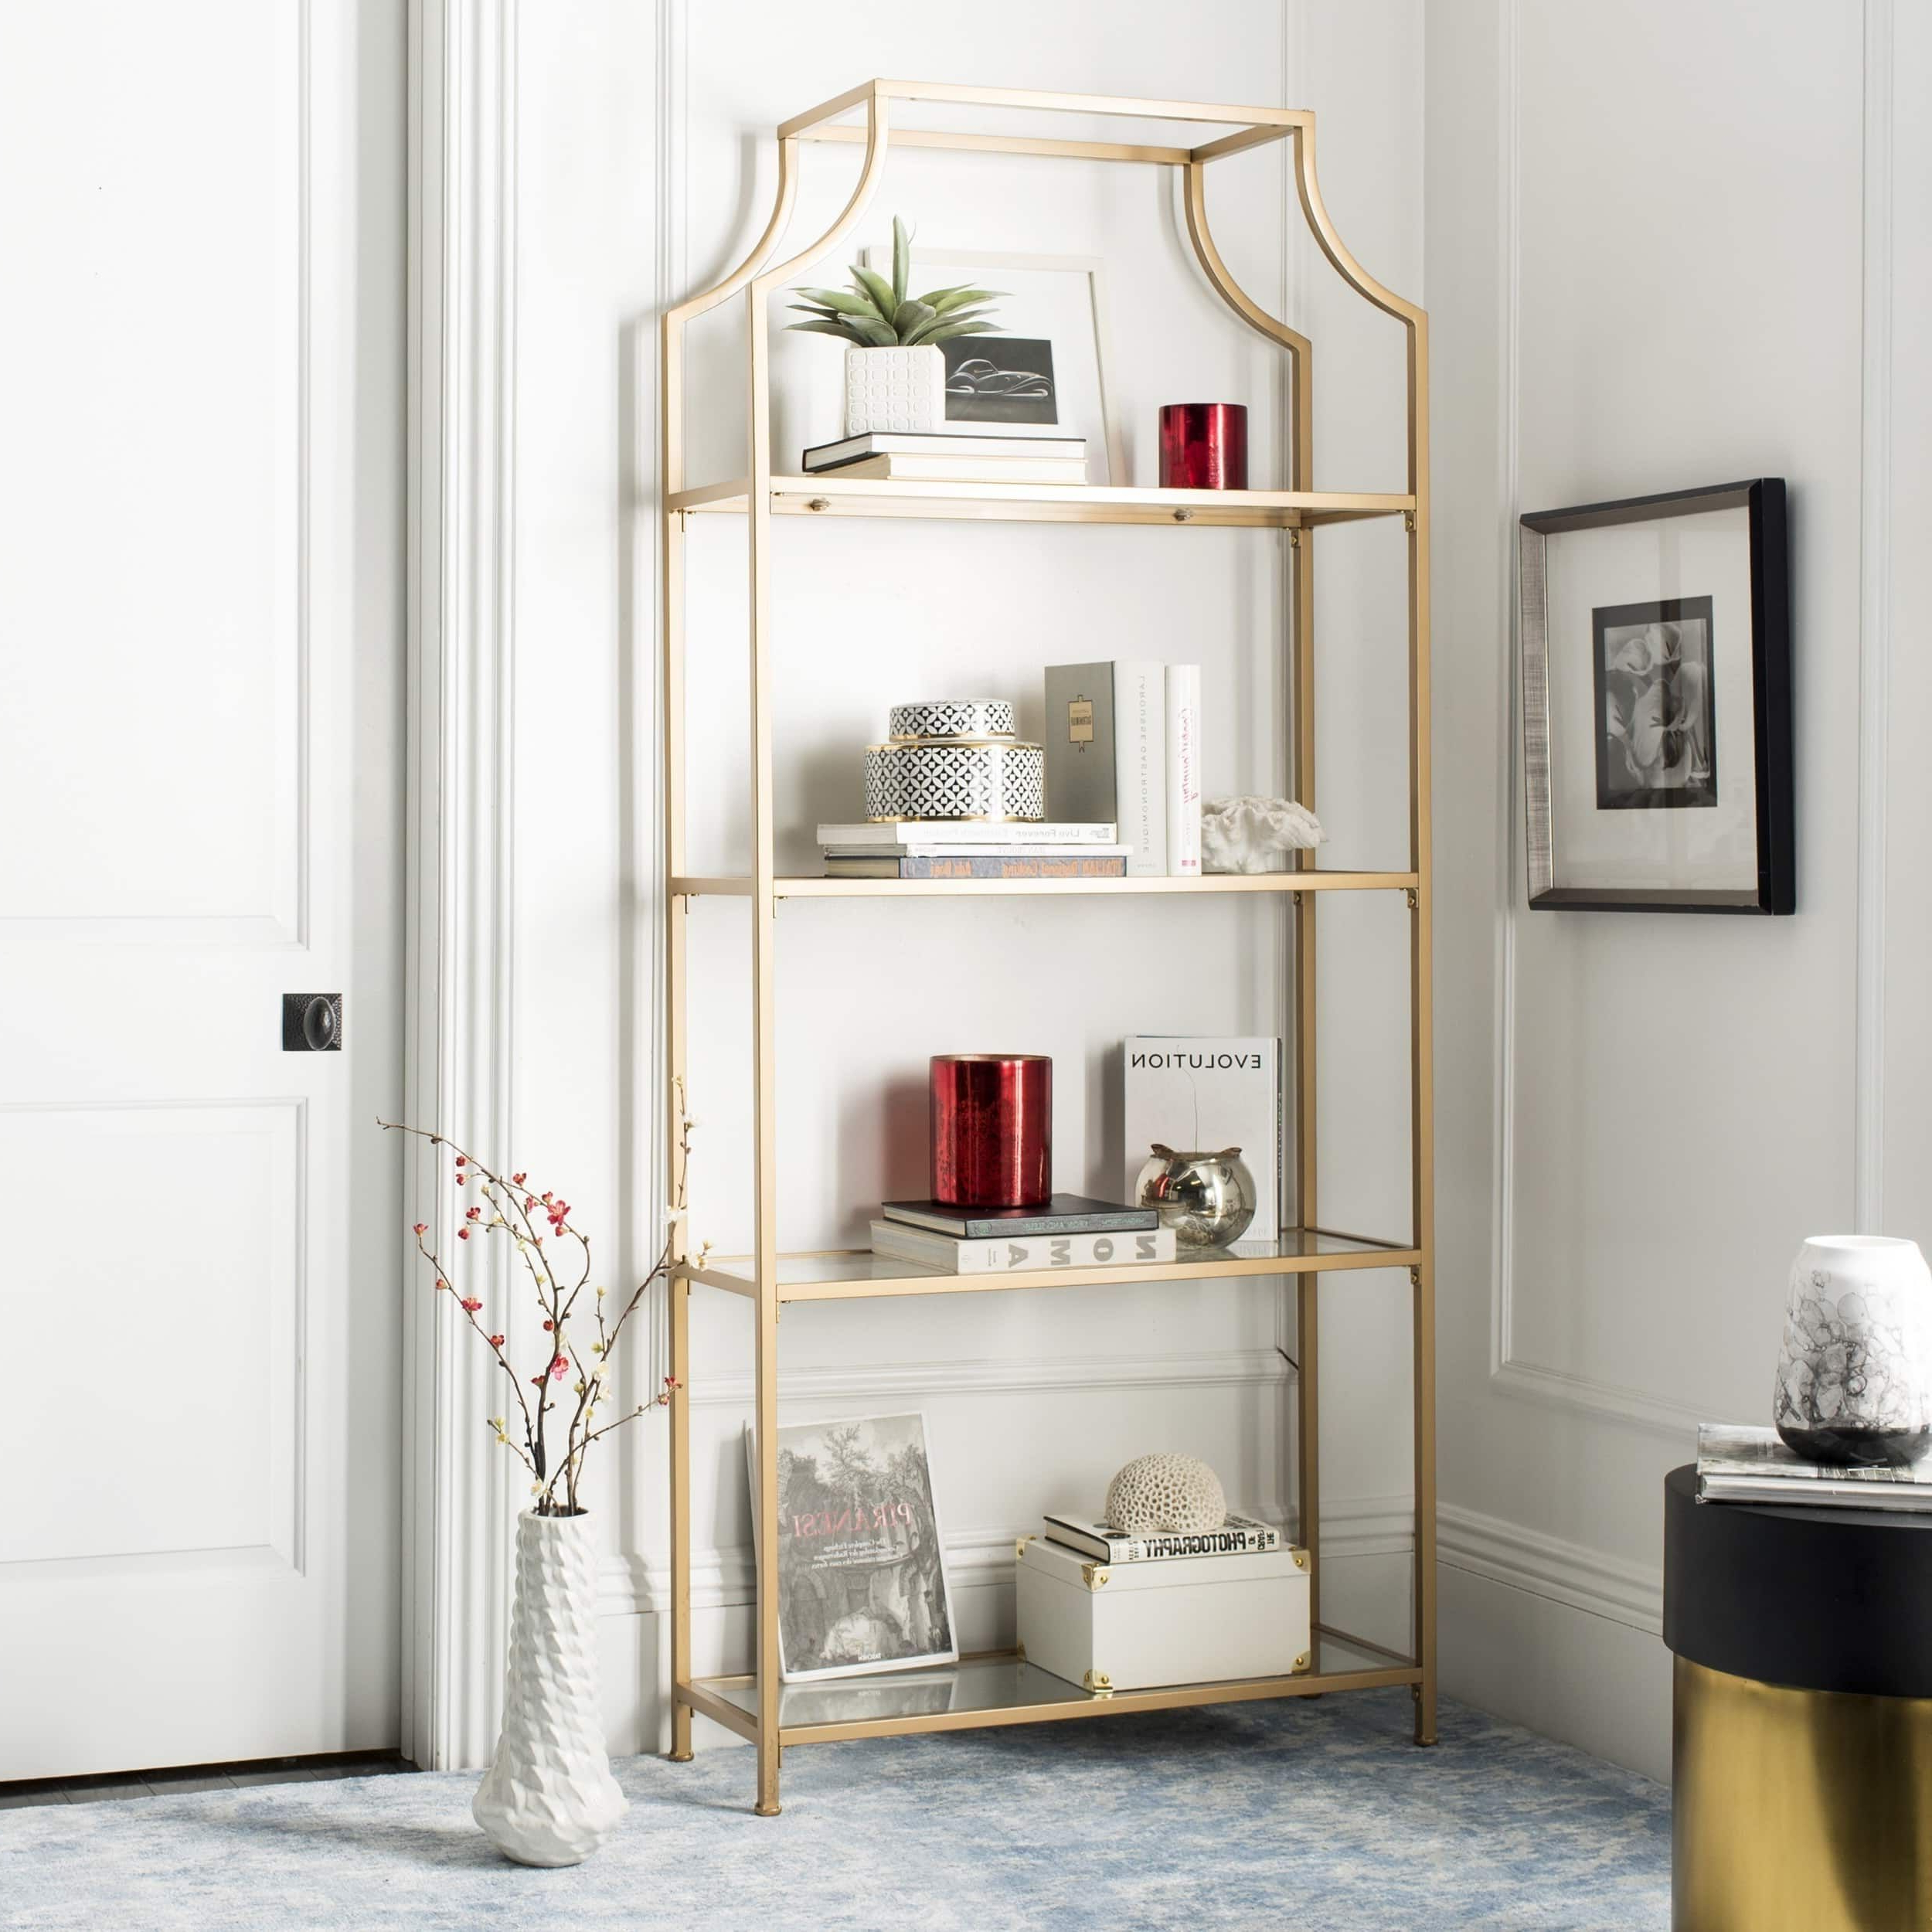 "Safavieh Slater 4 Tier Gold Etagere – 36"" X 12"" X 80"" In Throughout 2019 Aptos Etagere Bookcases (View 14 of 20)"